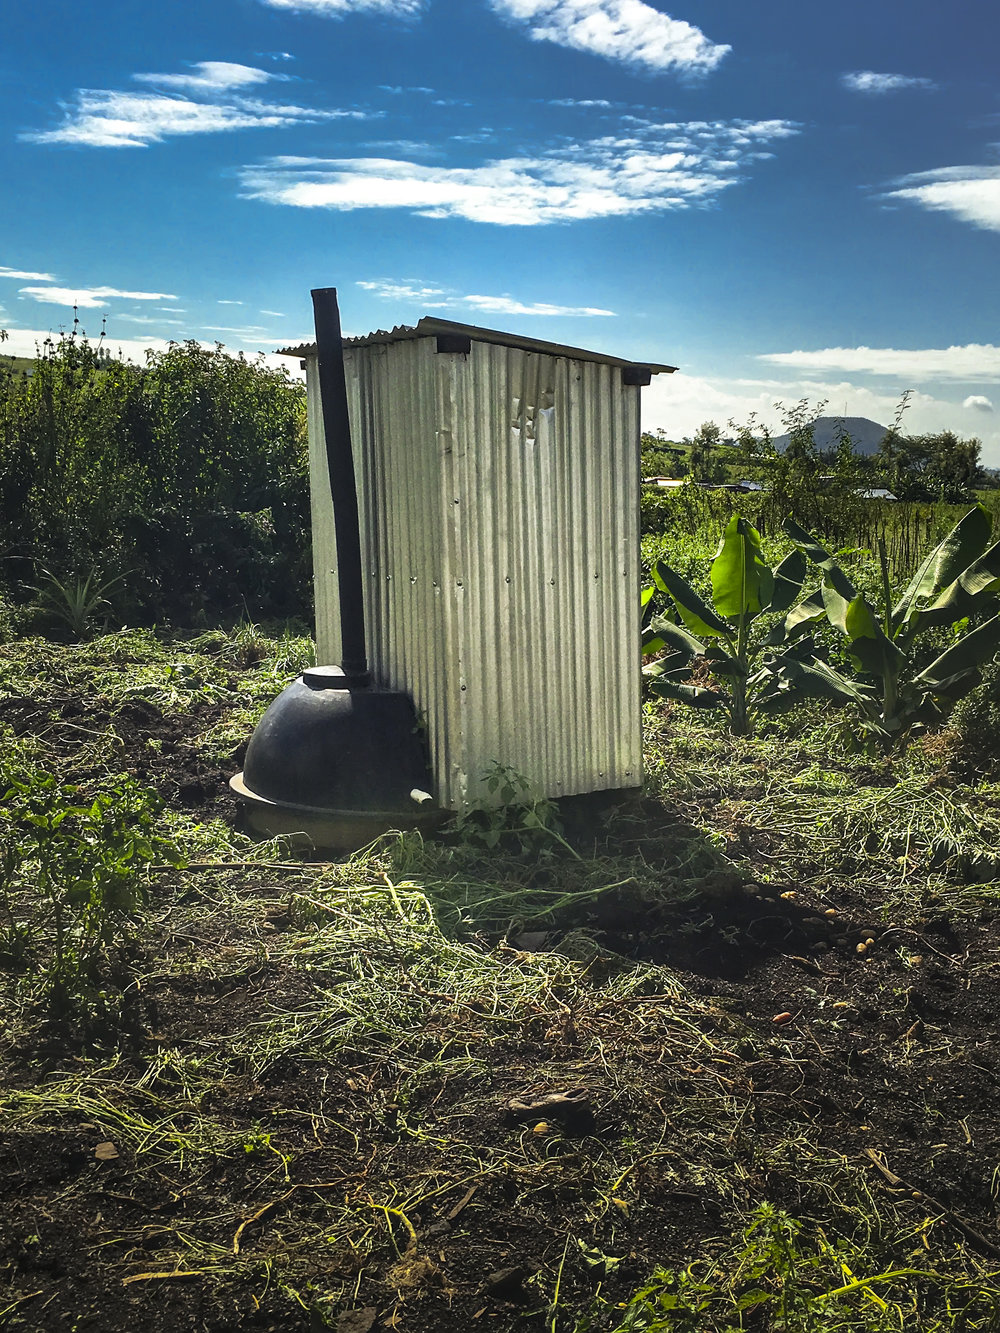 A composting toilet in the compound